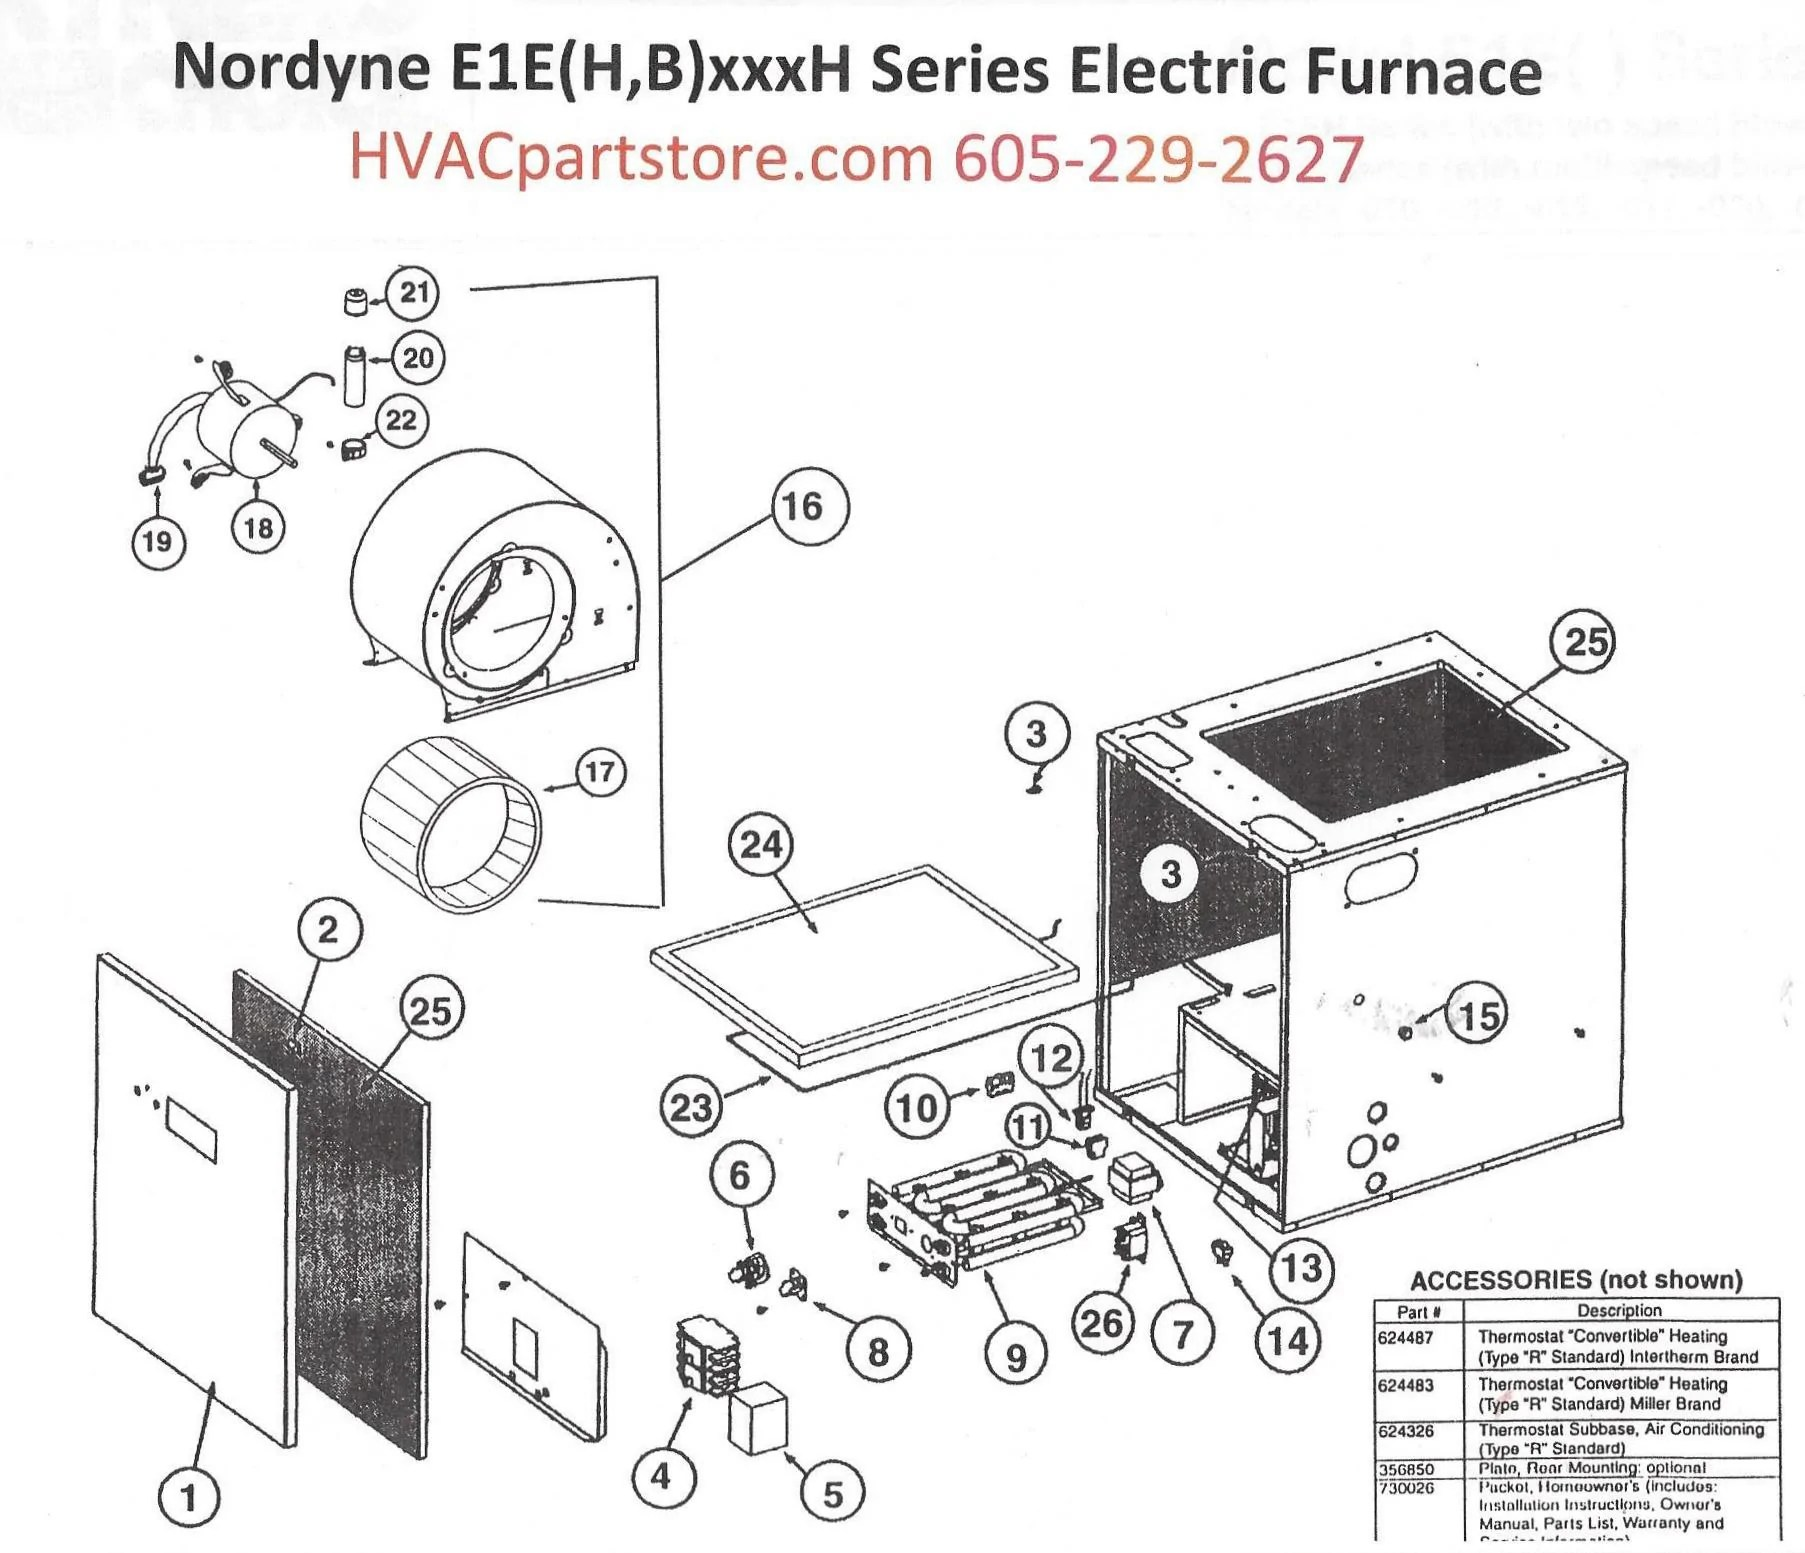 small resolution of e1eh012h nordyne electric furnace parts